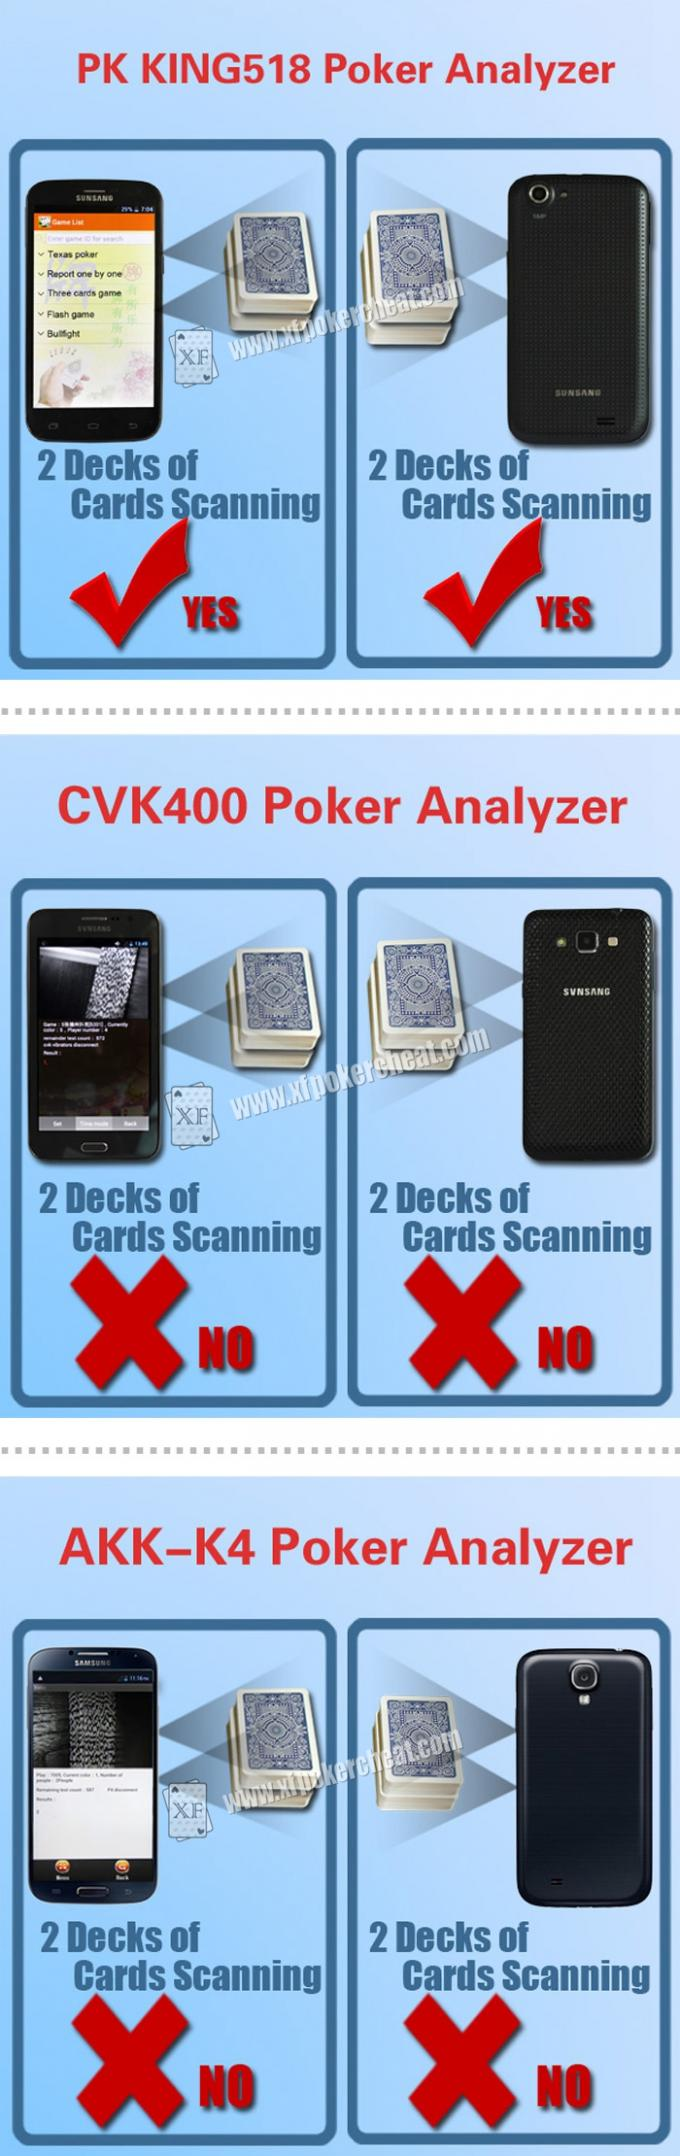 Samsung PK King 518 Poker Analyzer Cheat In Cards Game , Casino Games